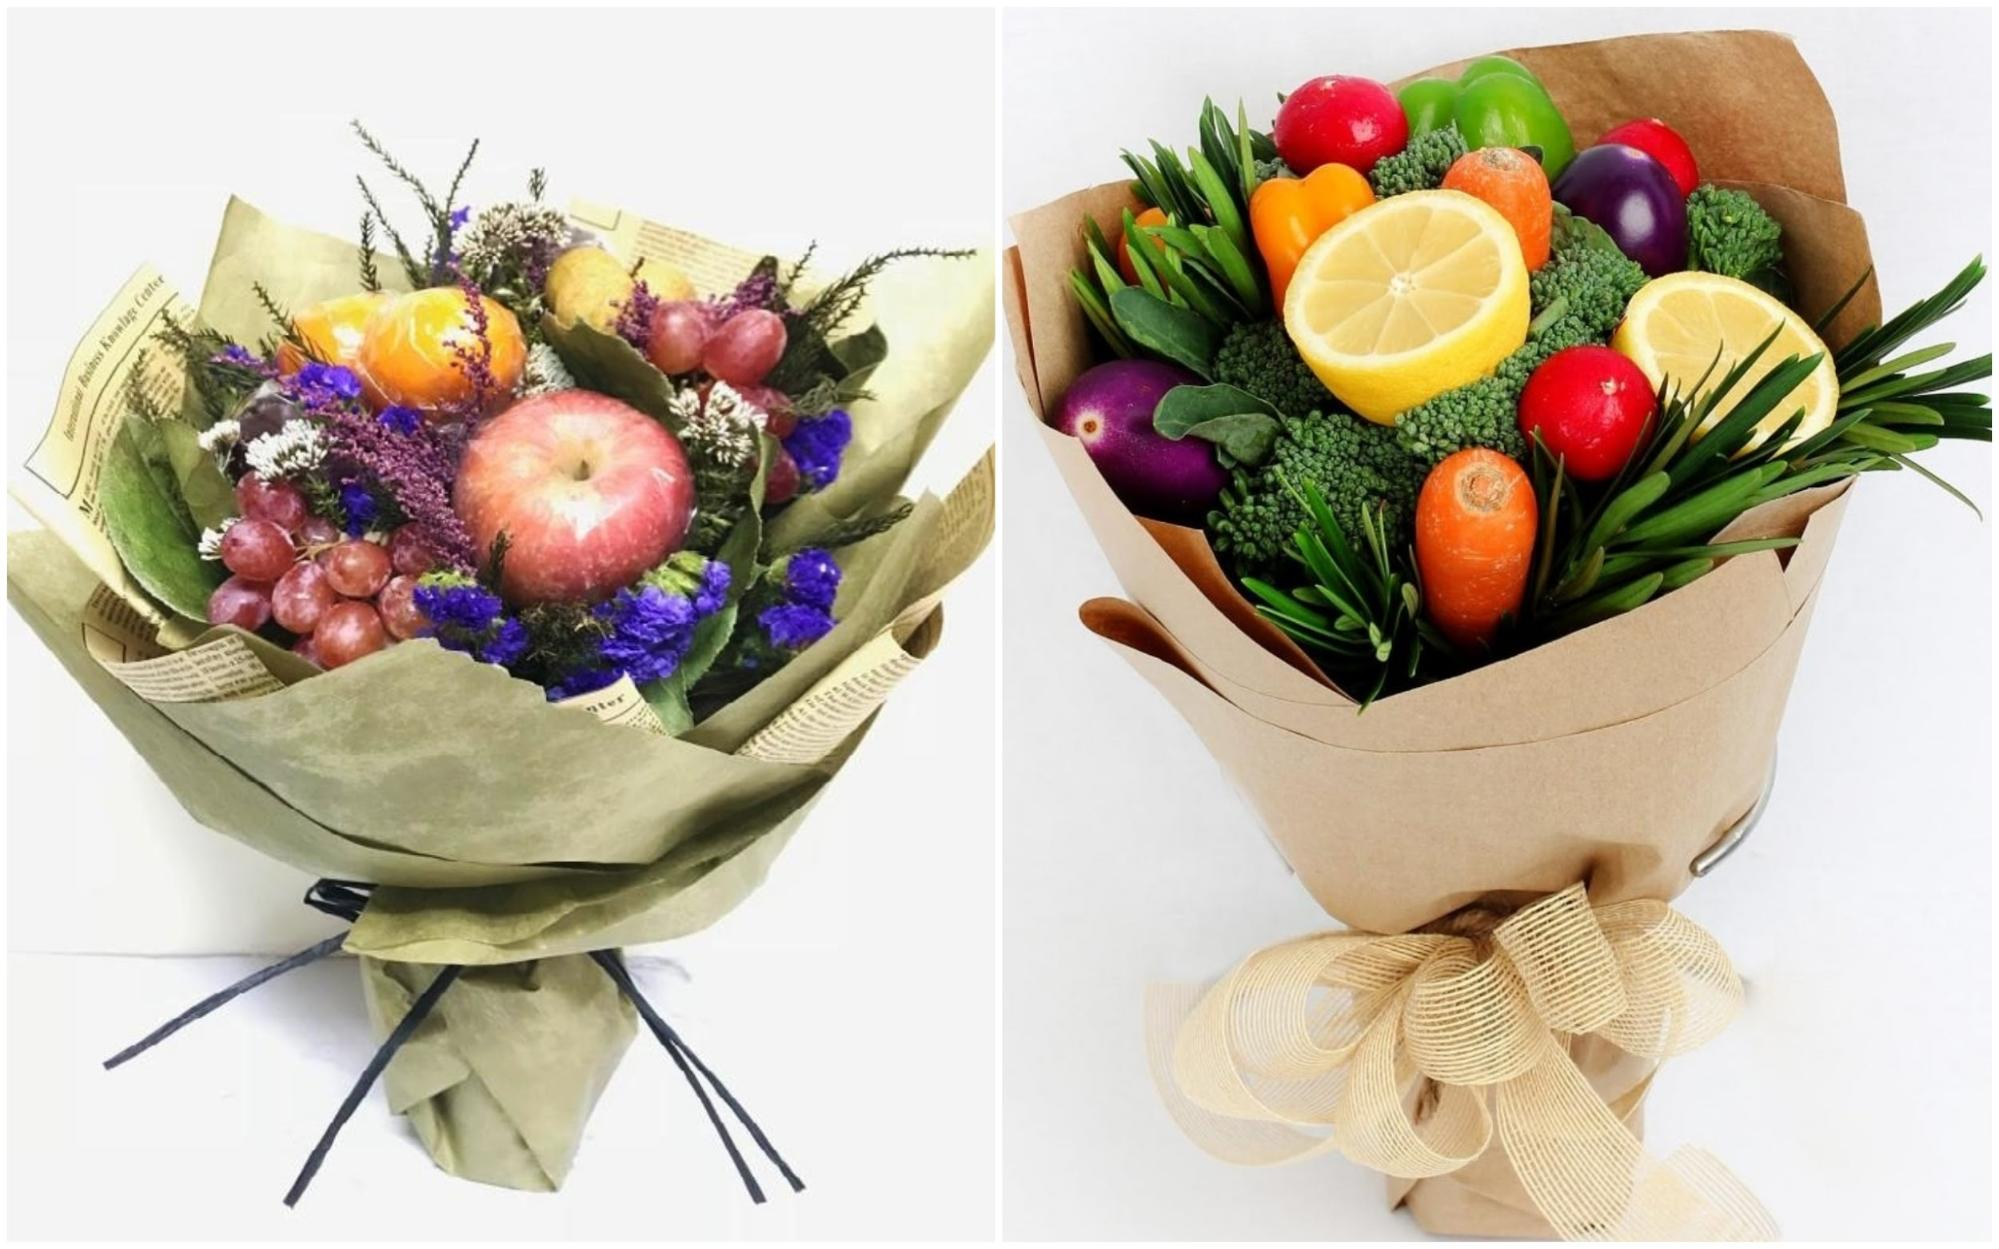 Edible bouquets for Valentine's Day 2019 - Fruits and Vegetables